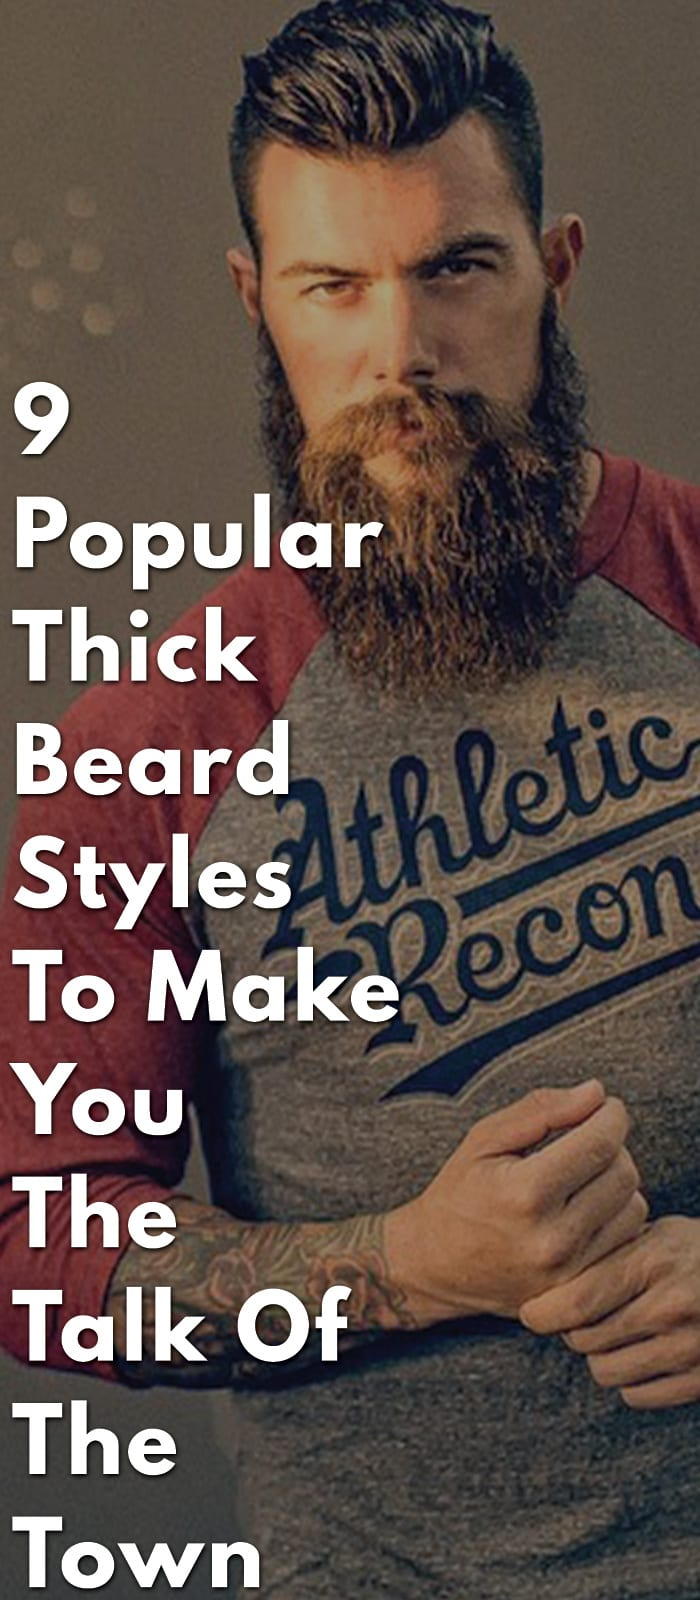 9-Popular-Thick-Beard-Styles-To-Make-You-The-Talk-Of-The-Town